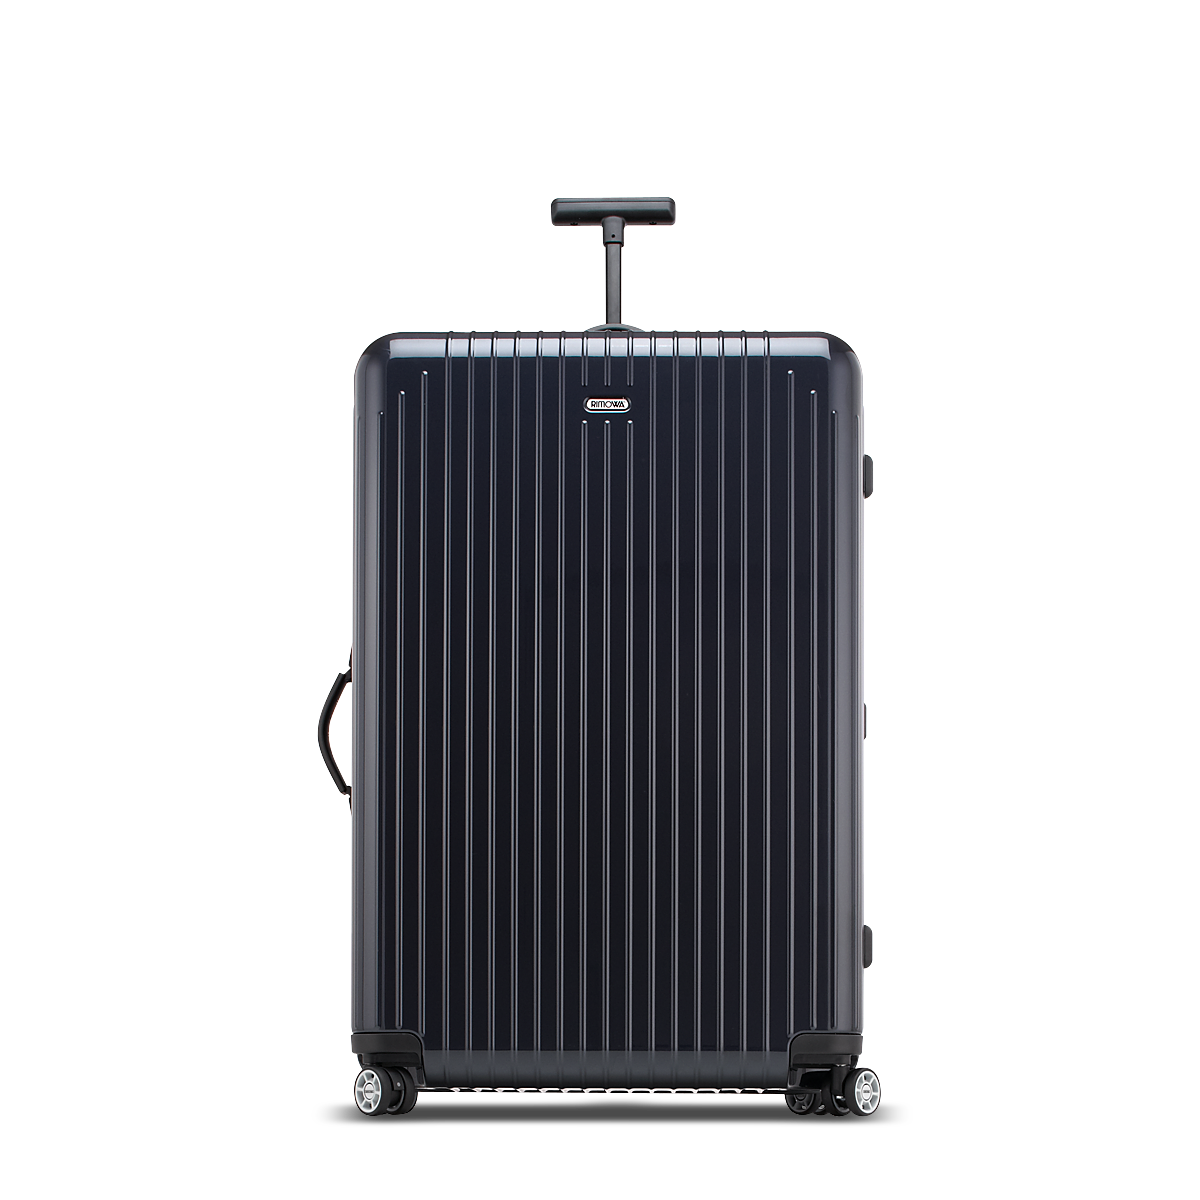 rimowa salsa air multiwheel 77cm. Black Bedroom Furniture Sets. Home Design Ideas